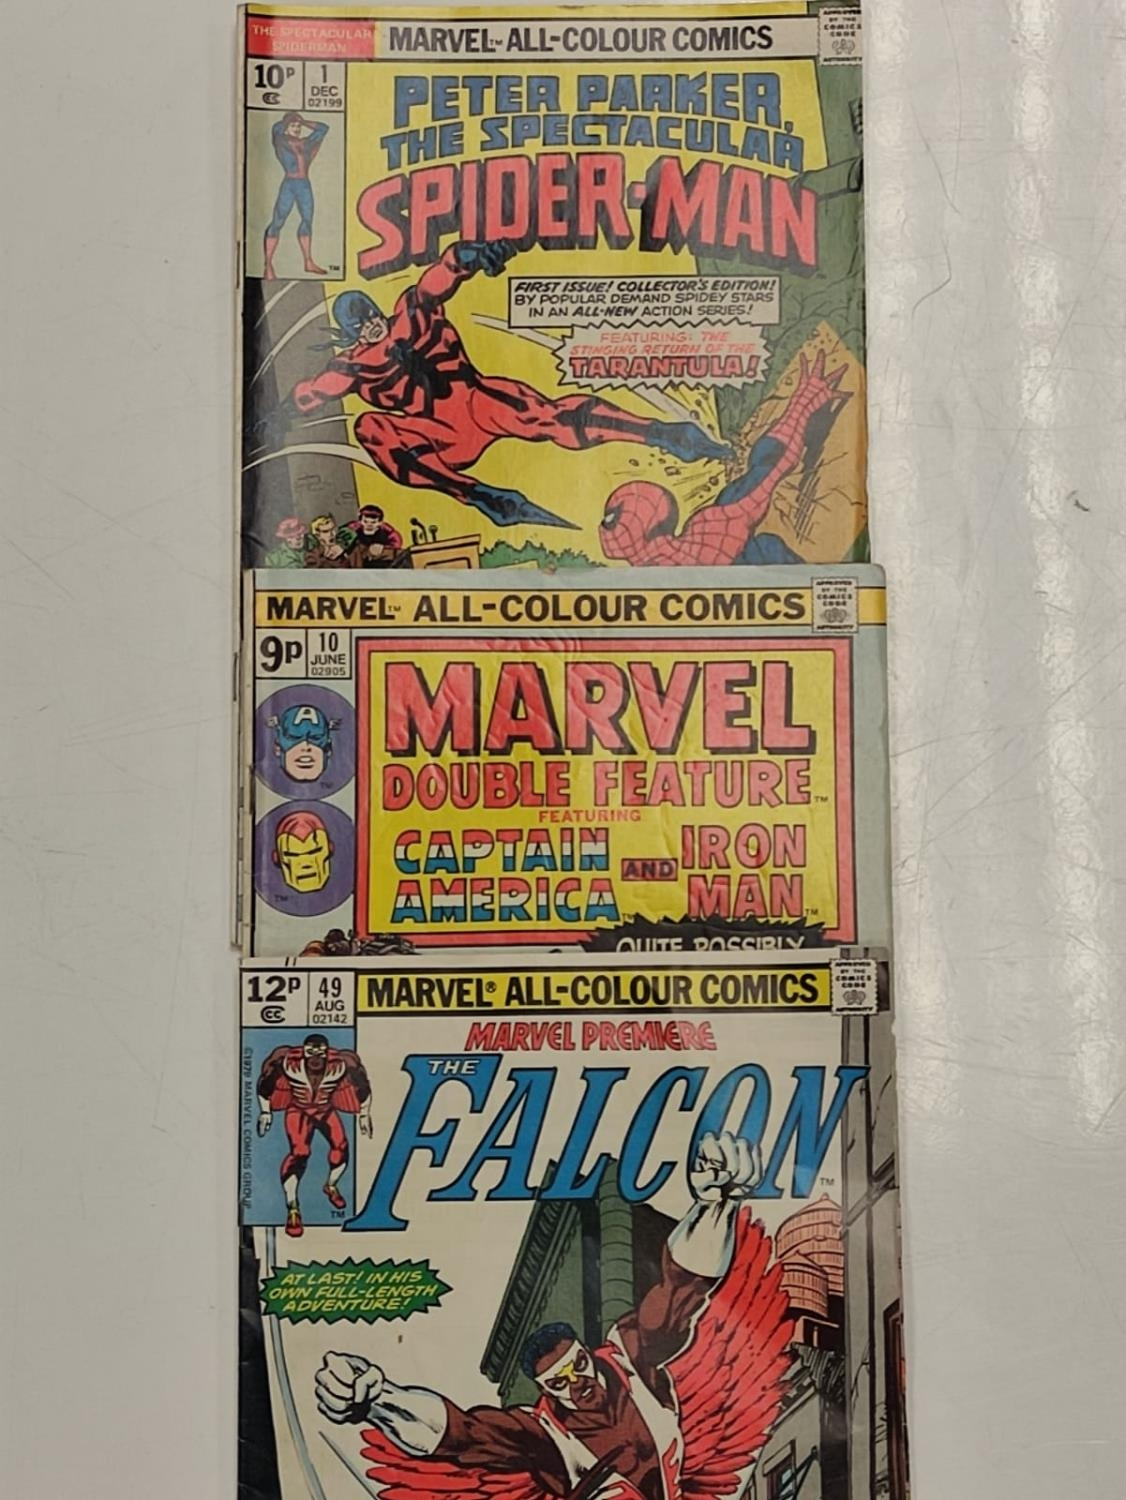 3 Eclectic Vintage Marvel Comics, including the rare 'Peter Parker, The Spectacular Spider-Man'. - Image 3 of 8